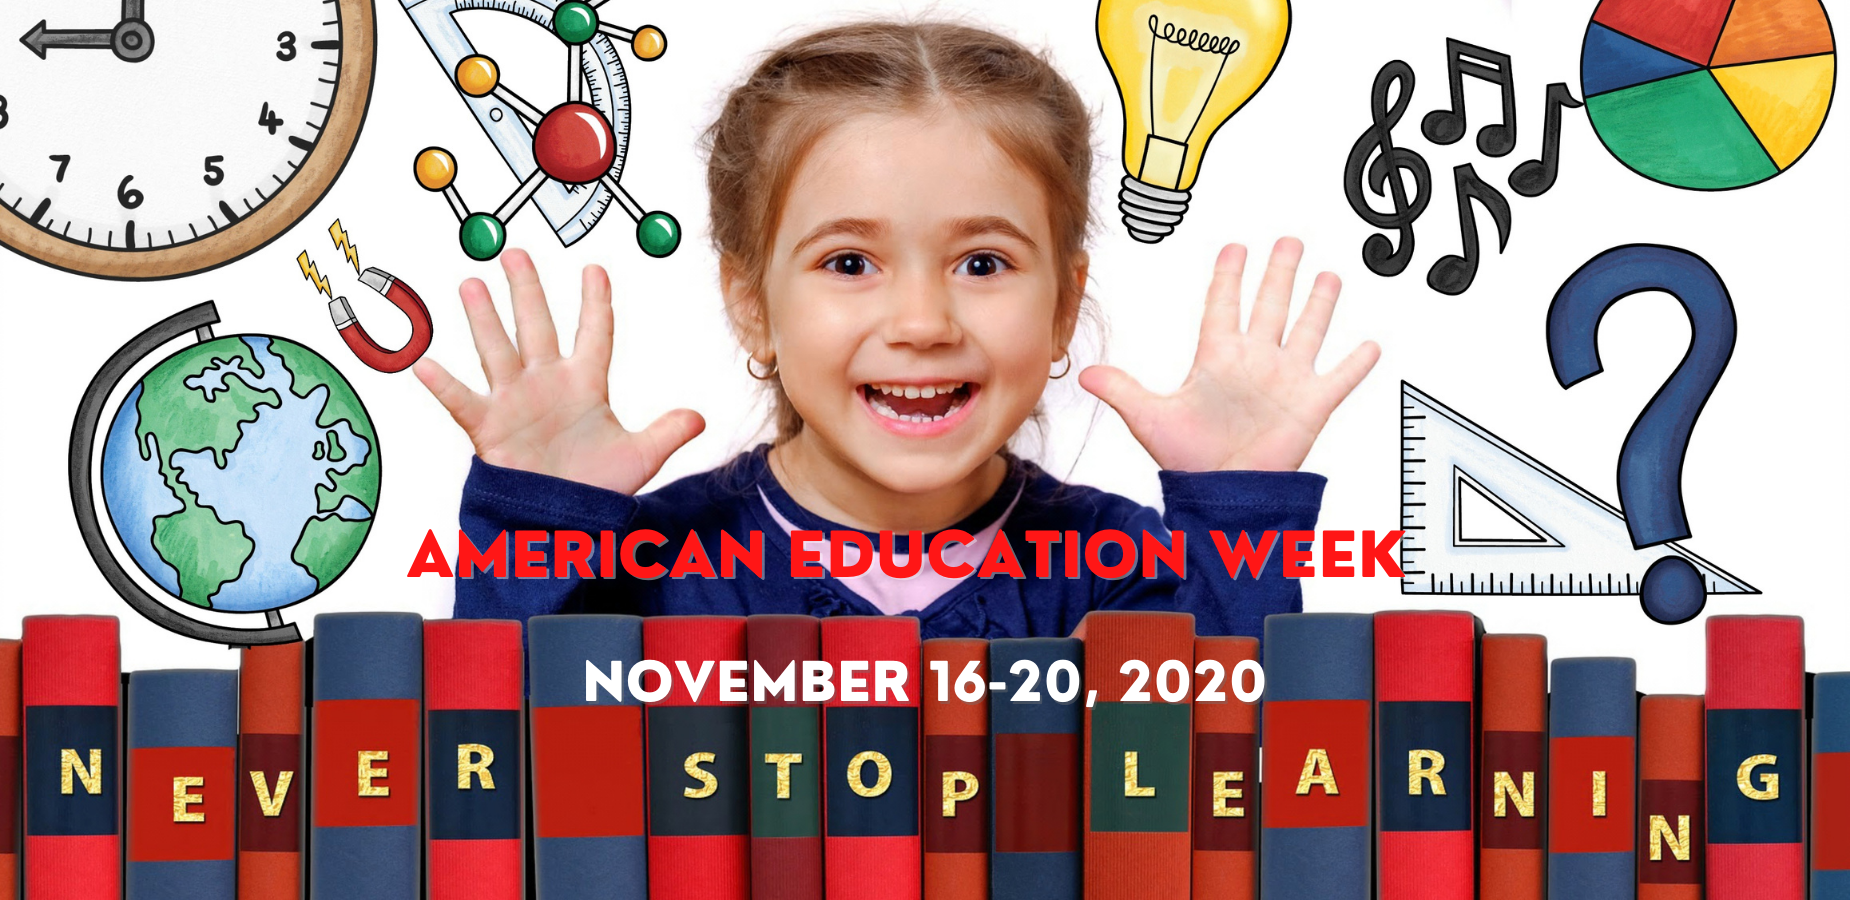 National Education Week Nov. 16- 20, 2020